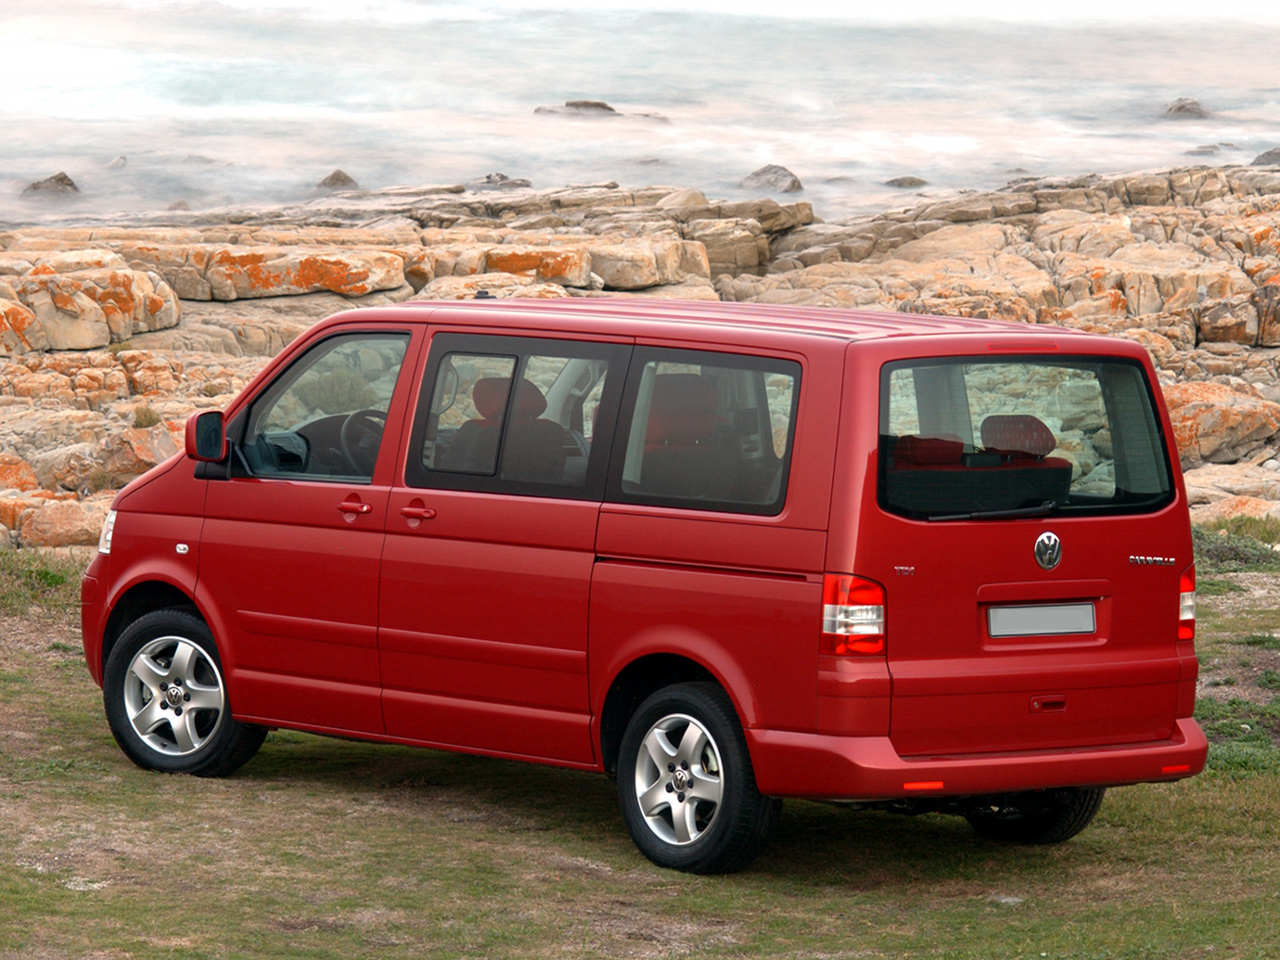 Volkswagen Caravelle 2.5 syncro фото 7